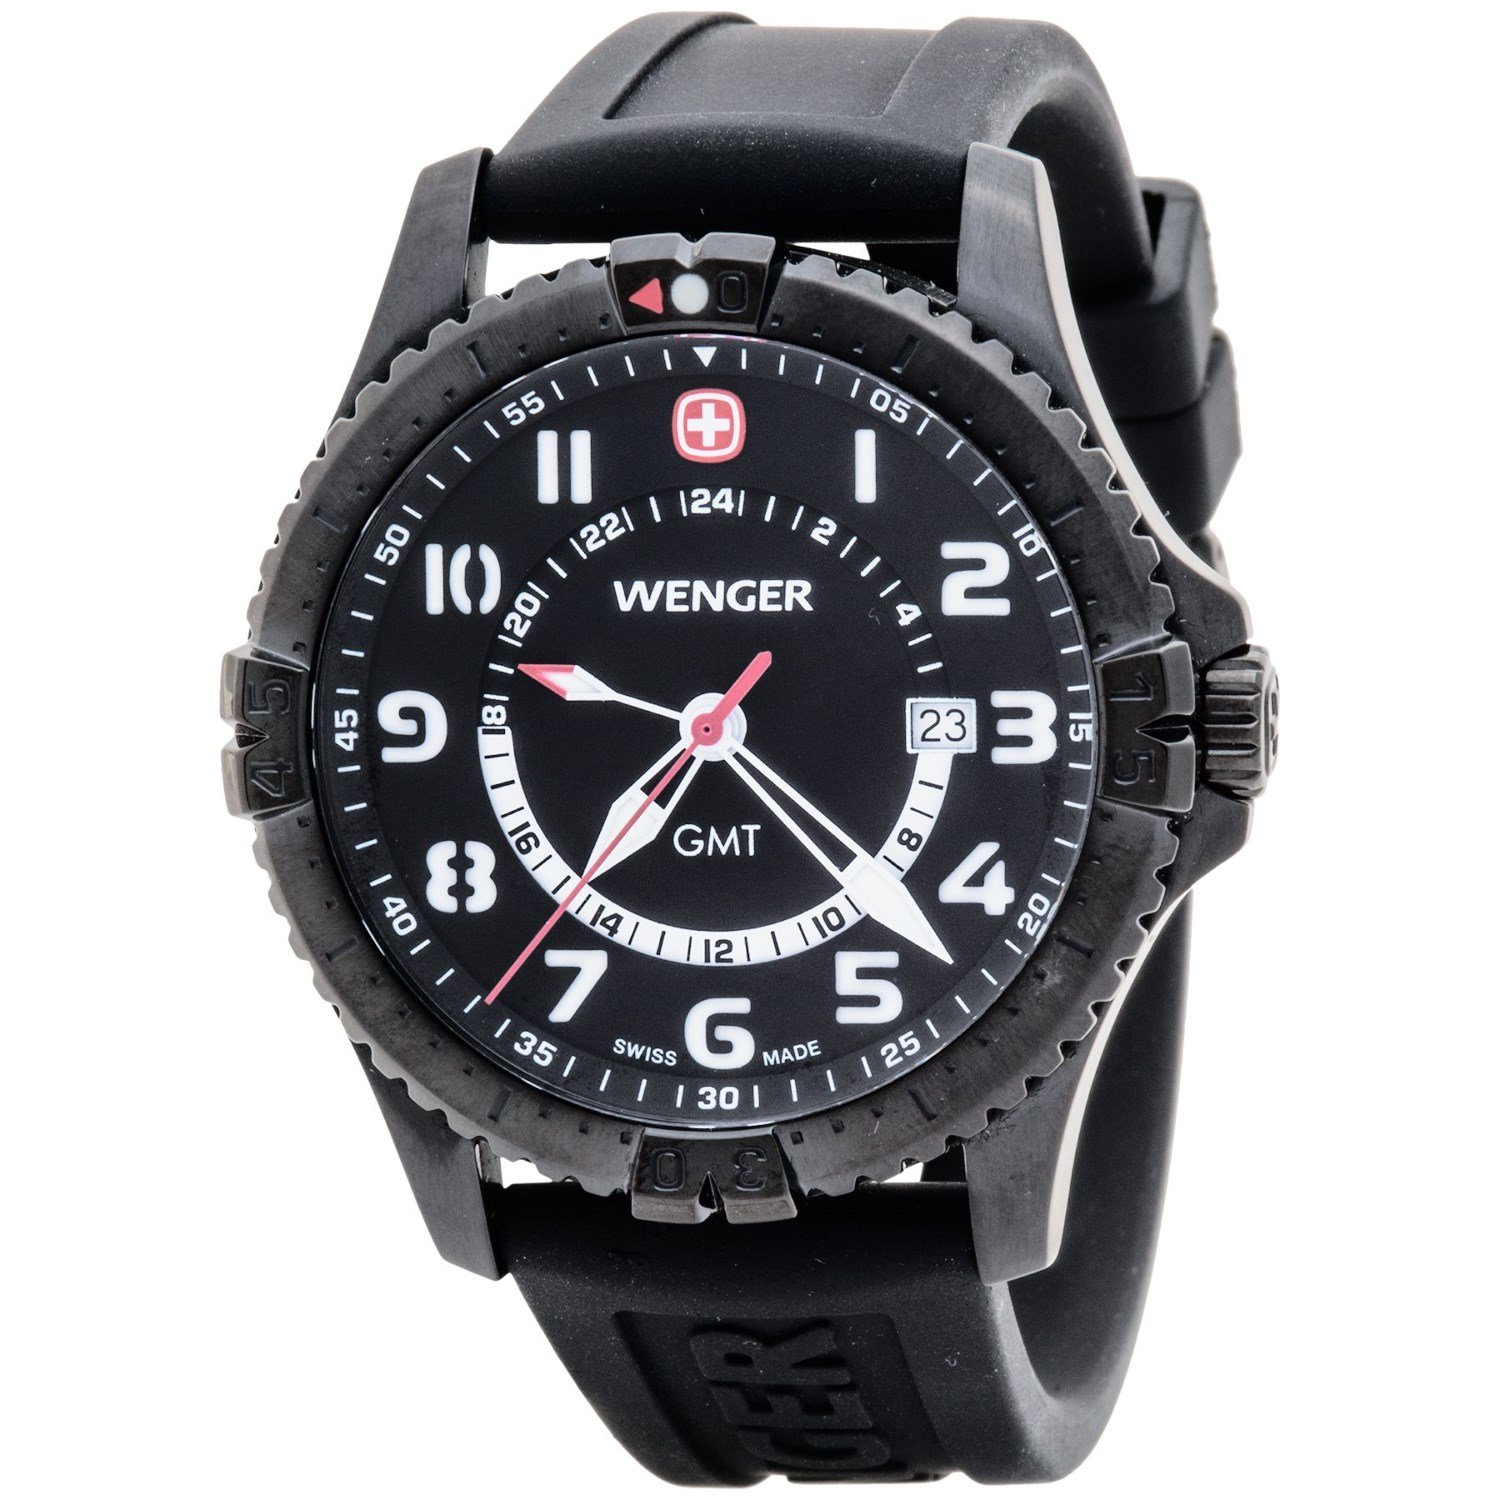 Review of Wenger Swiss Army Commando Traveller GMT